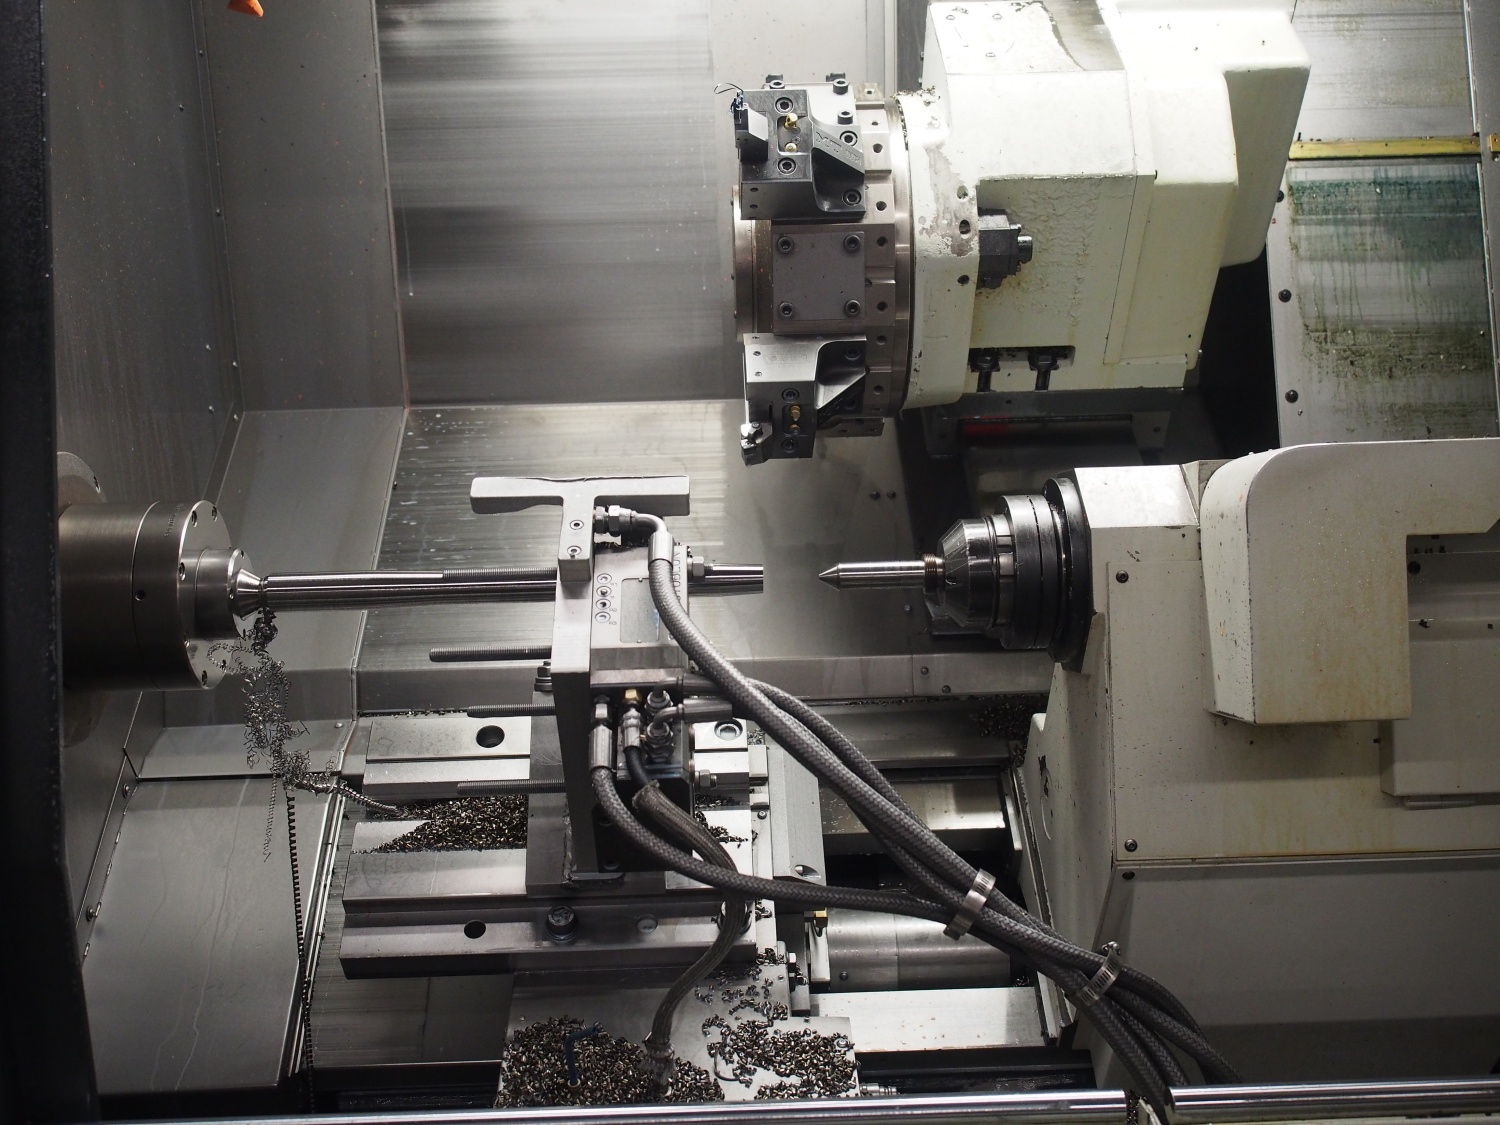 Same machine from a different angle and stage of completion.